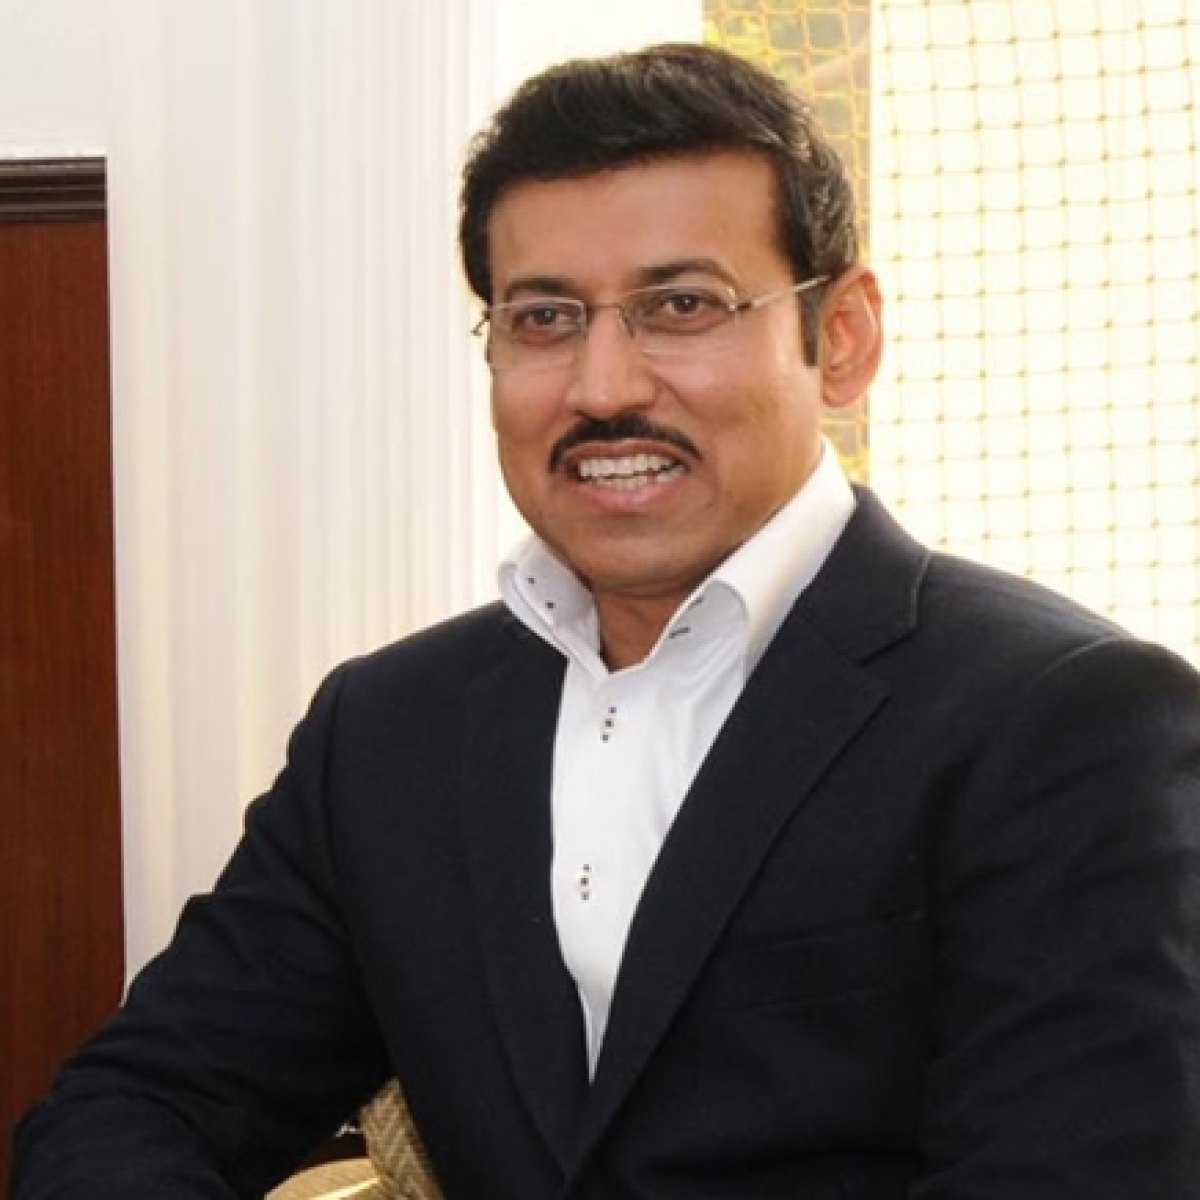 'Those who live in glass houses shouldn't throw stones': Twitter trolls Rajyavardhan Rathore for mocking 'secular liberals'